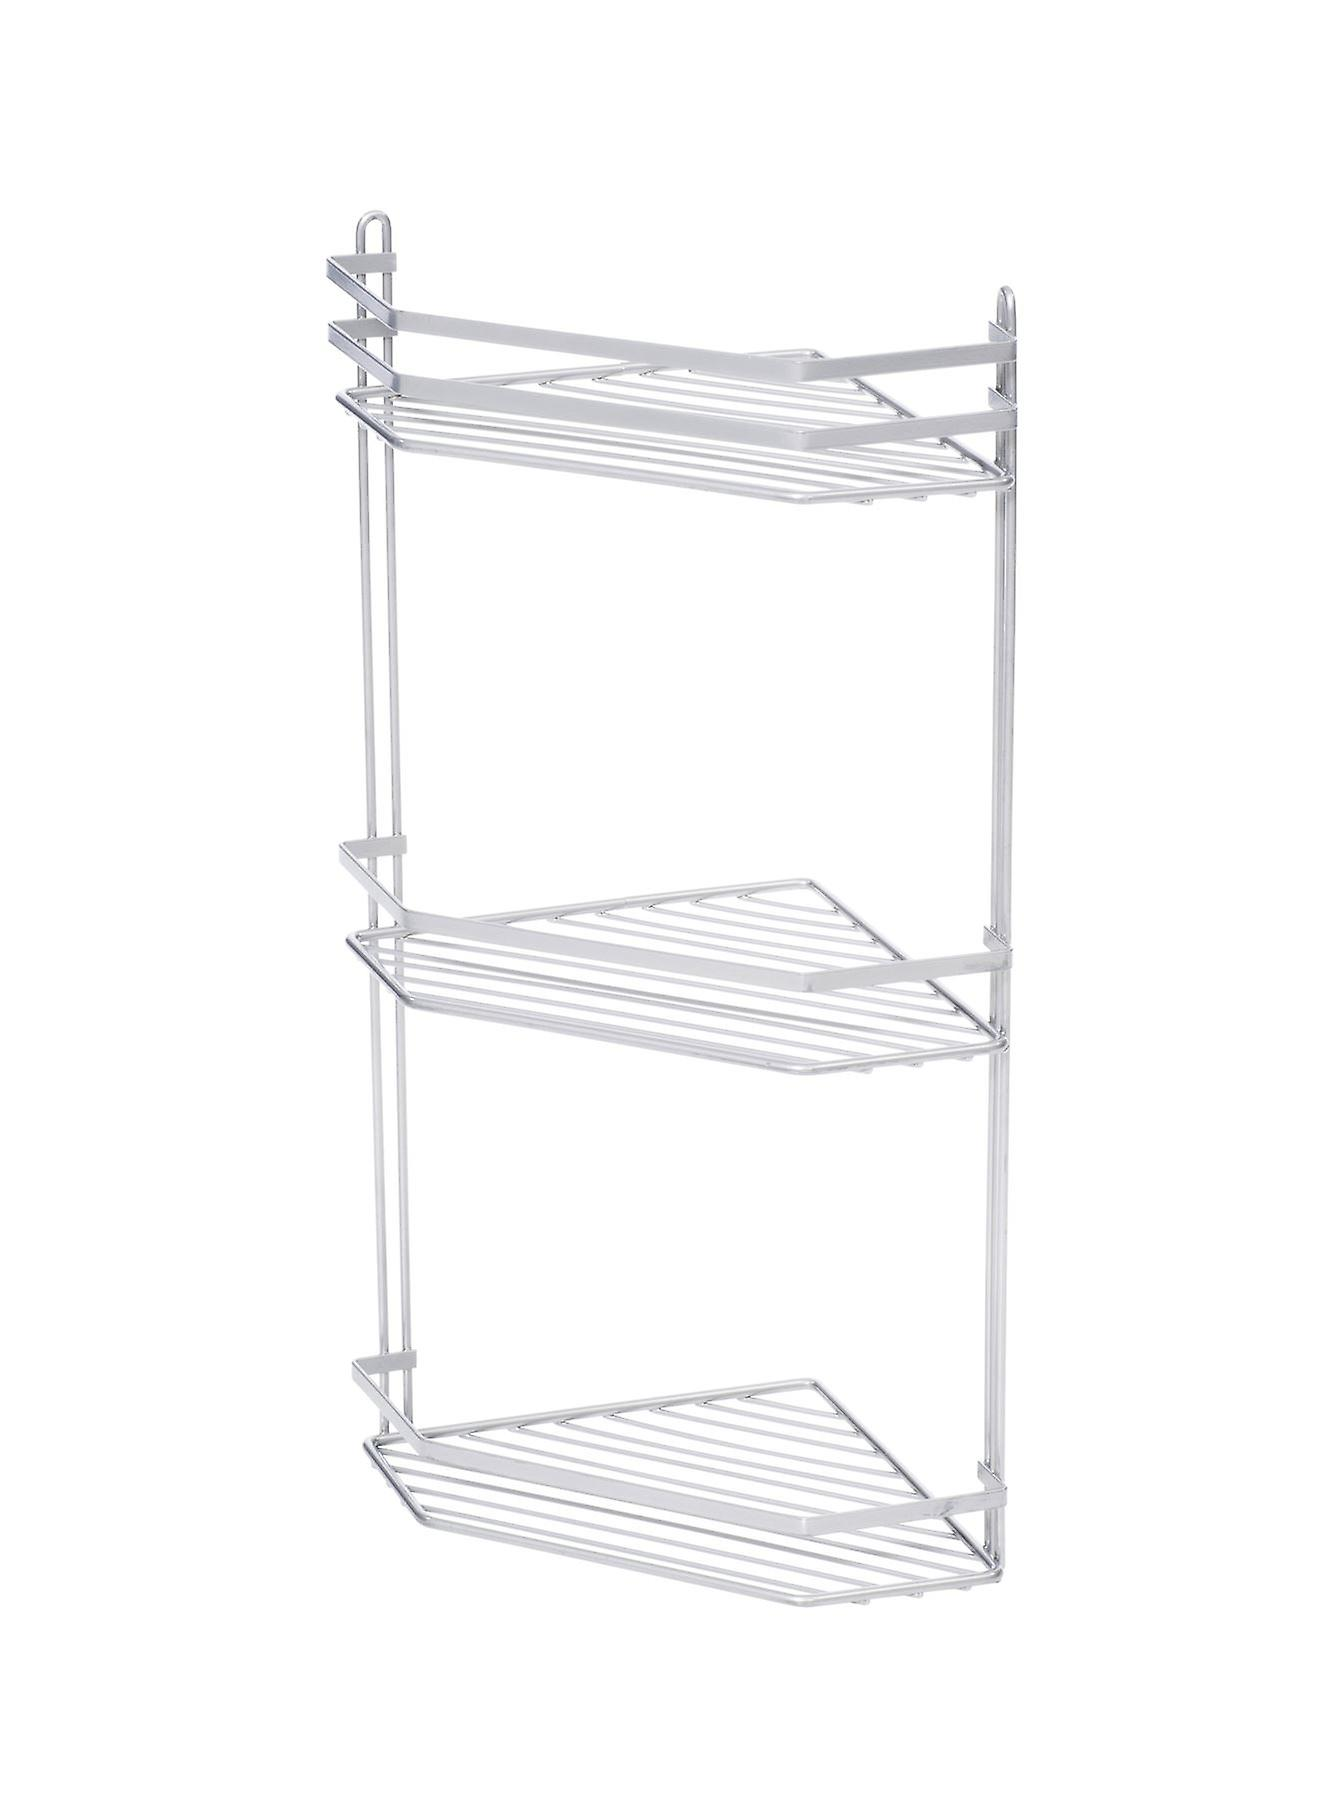 3 Tier Corner Shower Caddy Metallic Effect Rust Proof Coating In Silver